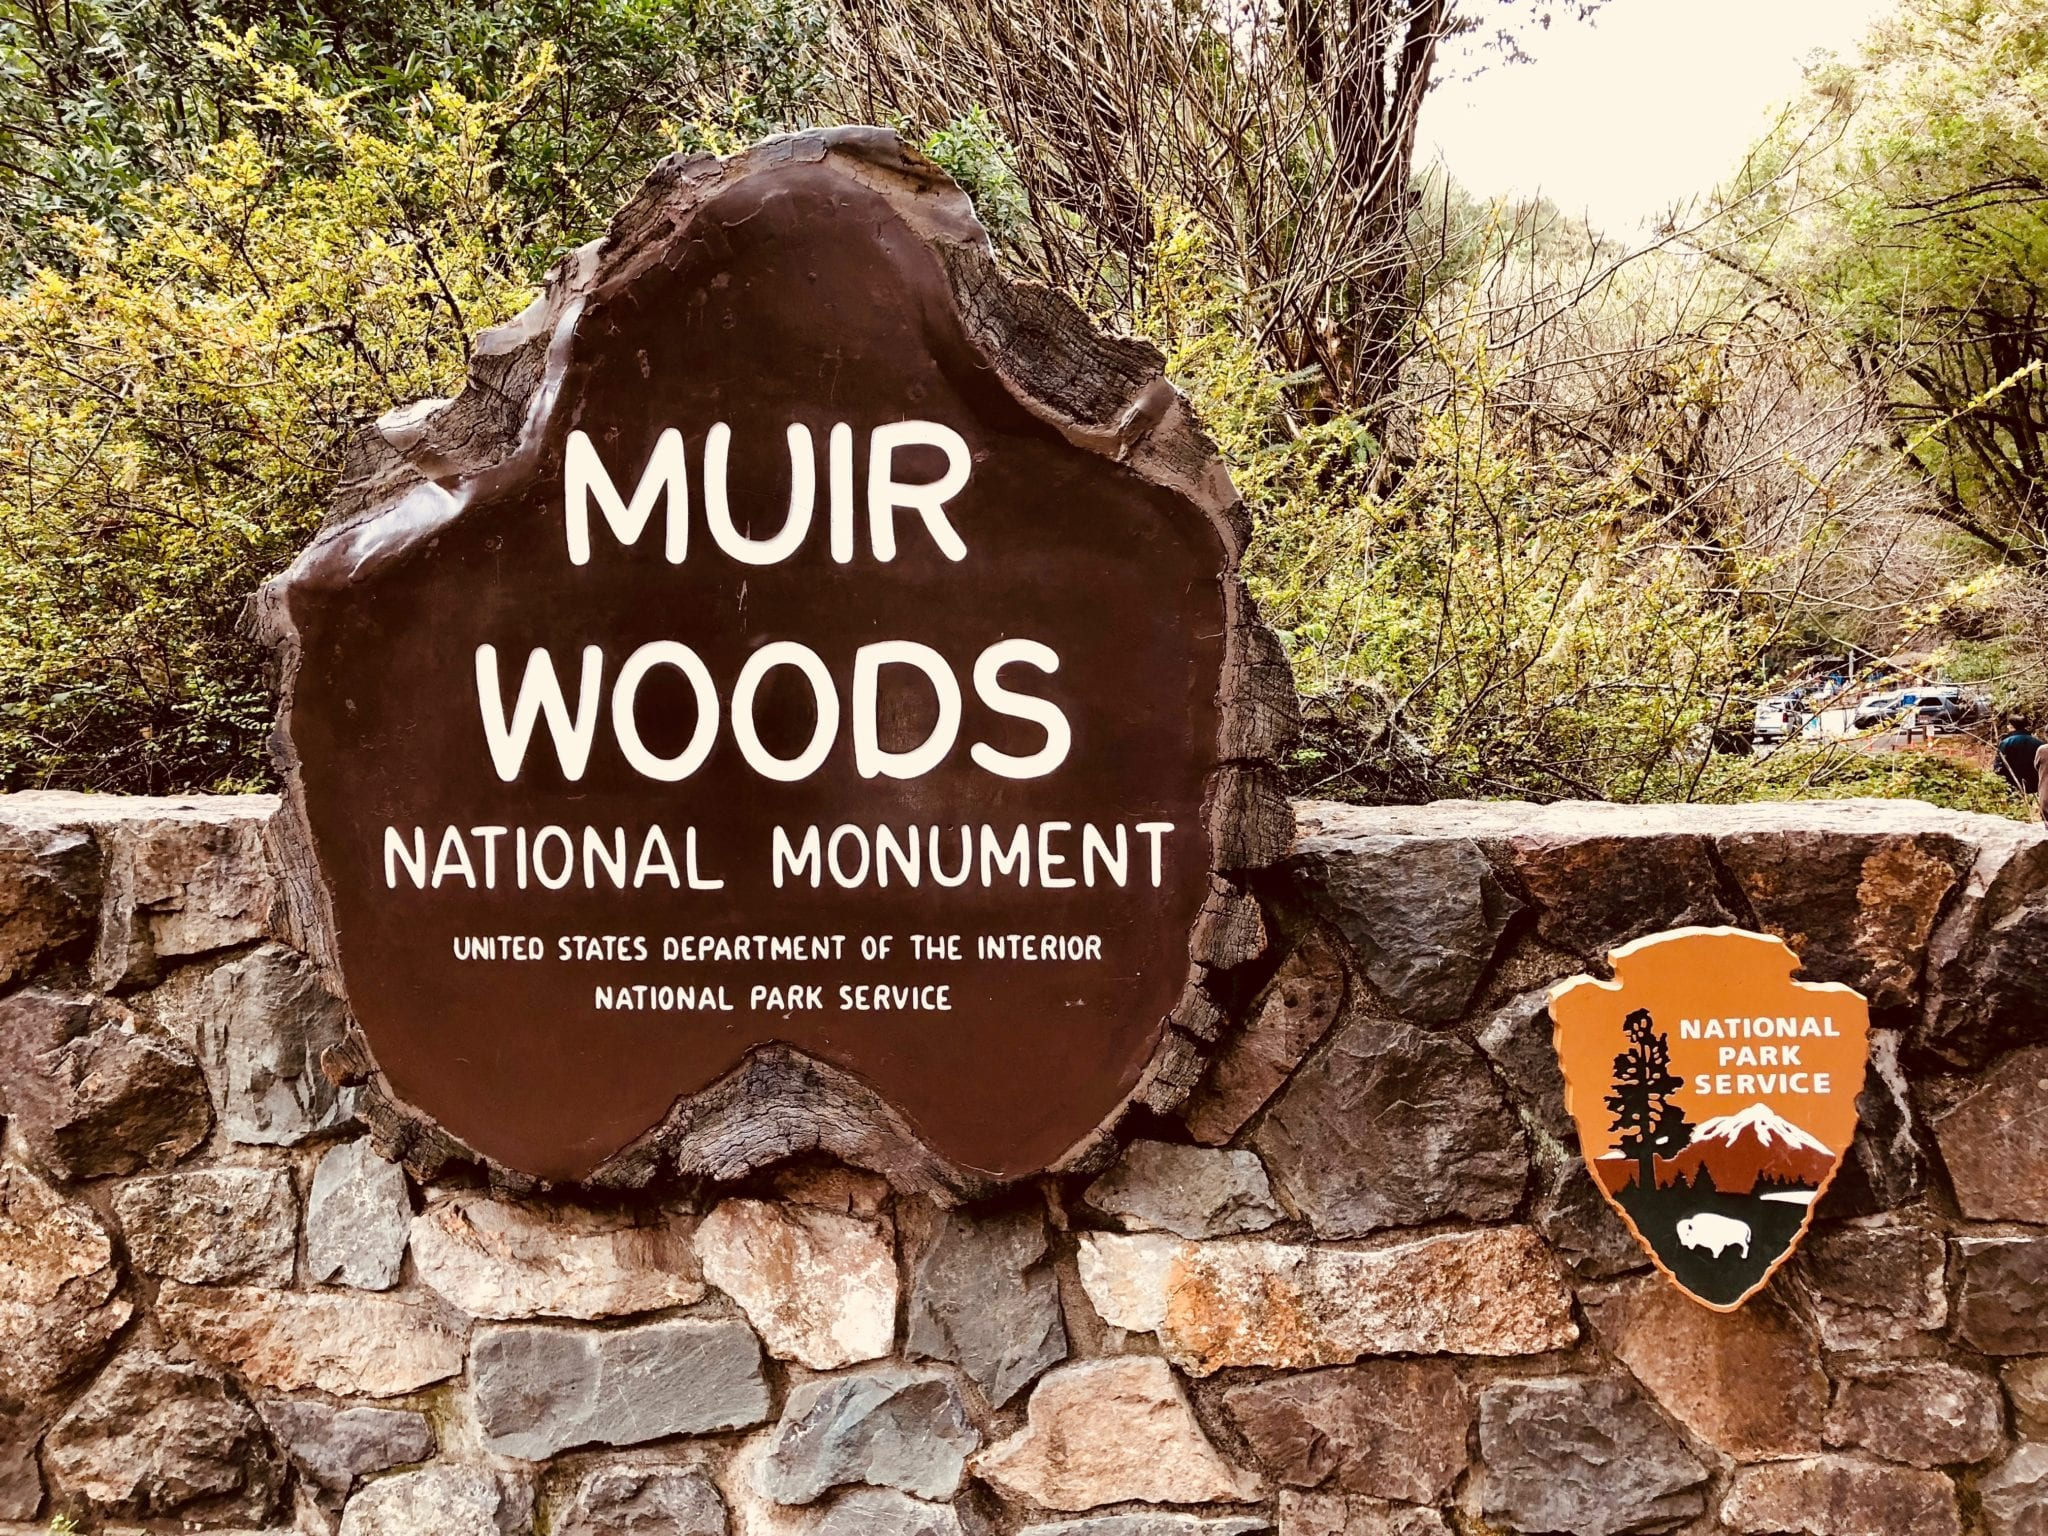 muir woods national monument Ironically, the area that is now muir woods national monument was saved because in the 19th century it was just too hard for loggers to get there located just 12 miles from the golden gate bridge, this old-growth stand is now wonderfully accessible to anyone who wants to take a walk in the woods.